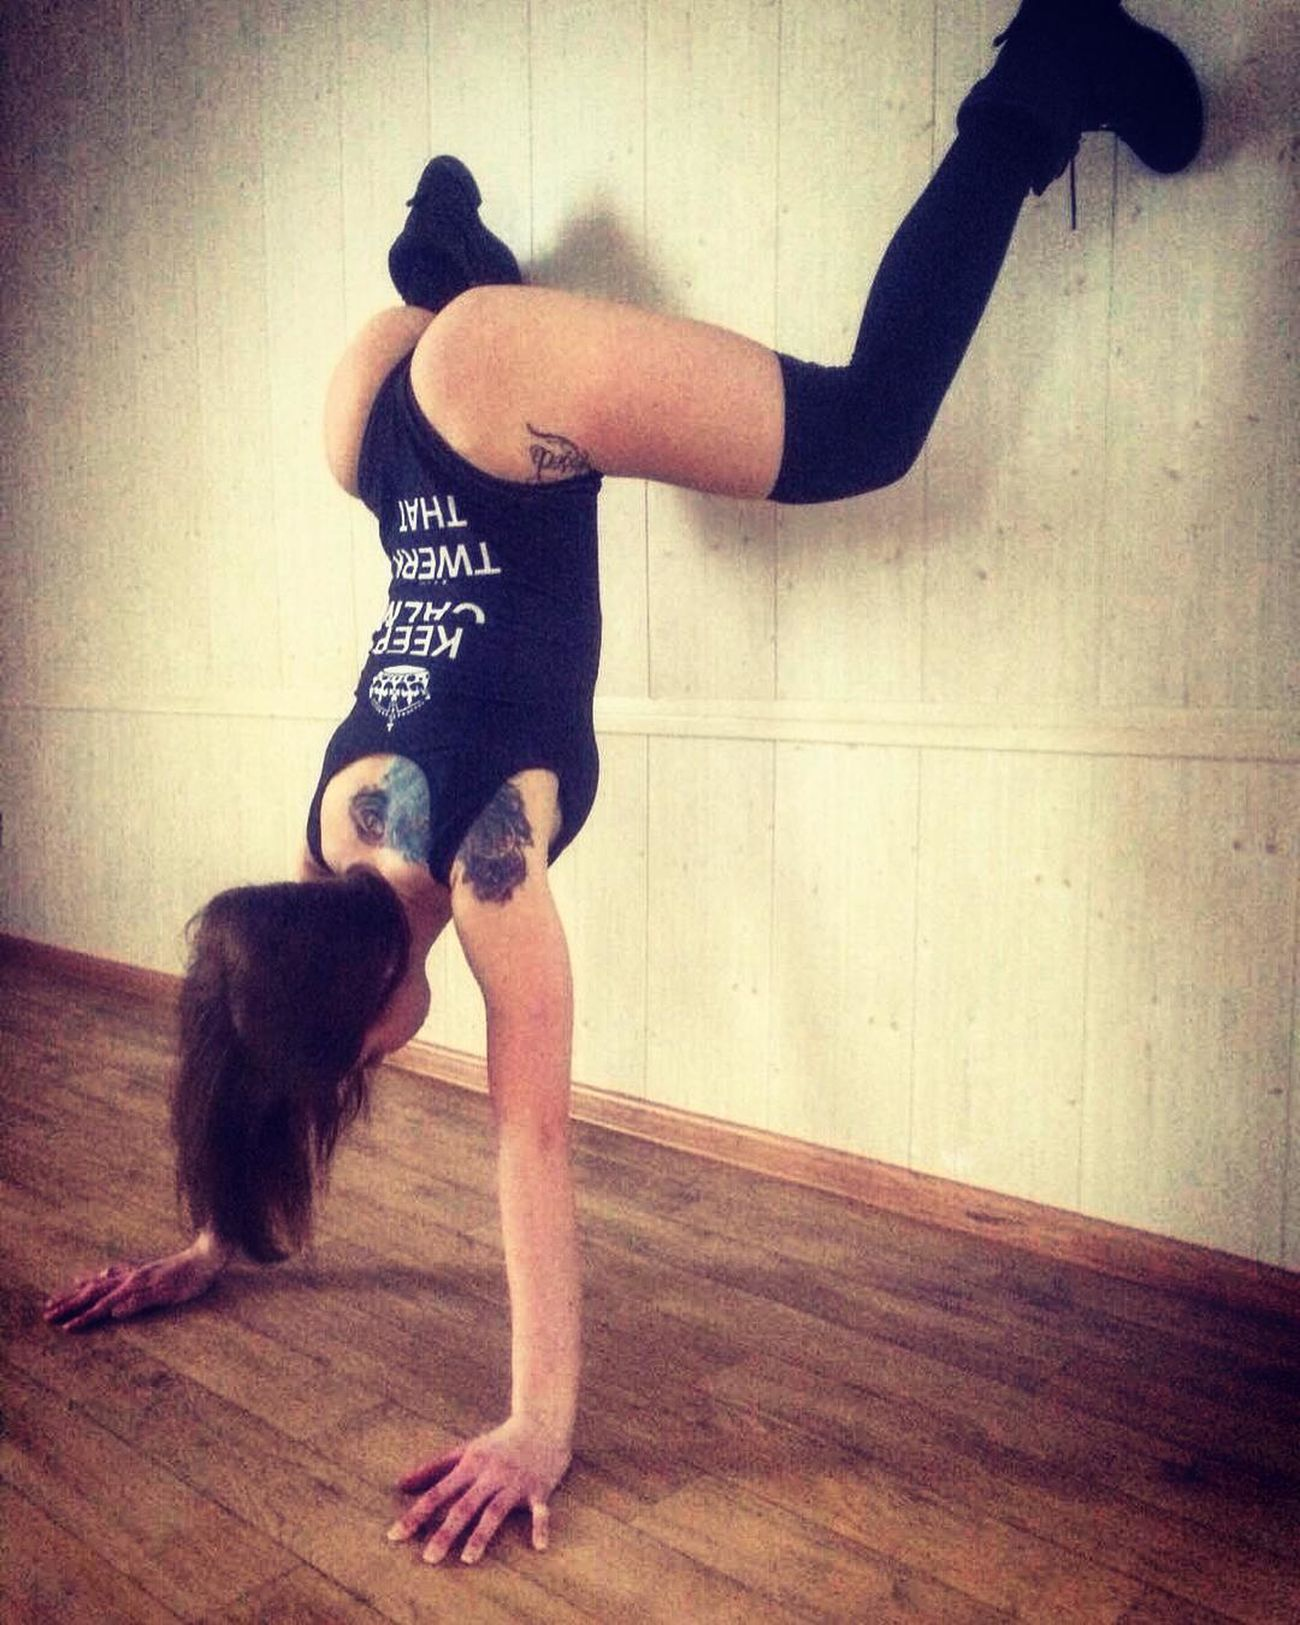 Day Indoors  Real People Sexygirl SexyGirl.♥ Sexygirls Sexylady Sexylegs Sexylips Sexyness Sexyselfie Sexytime Sexywoman Sexywomen Sexy♡ Shape Shapes And Forms Yoga Yoga ॐ Yogagirl Yogatime Young Adult First Eyeem Photo